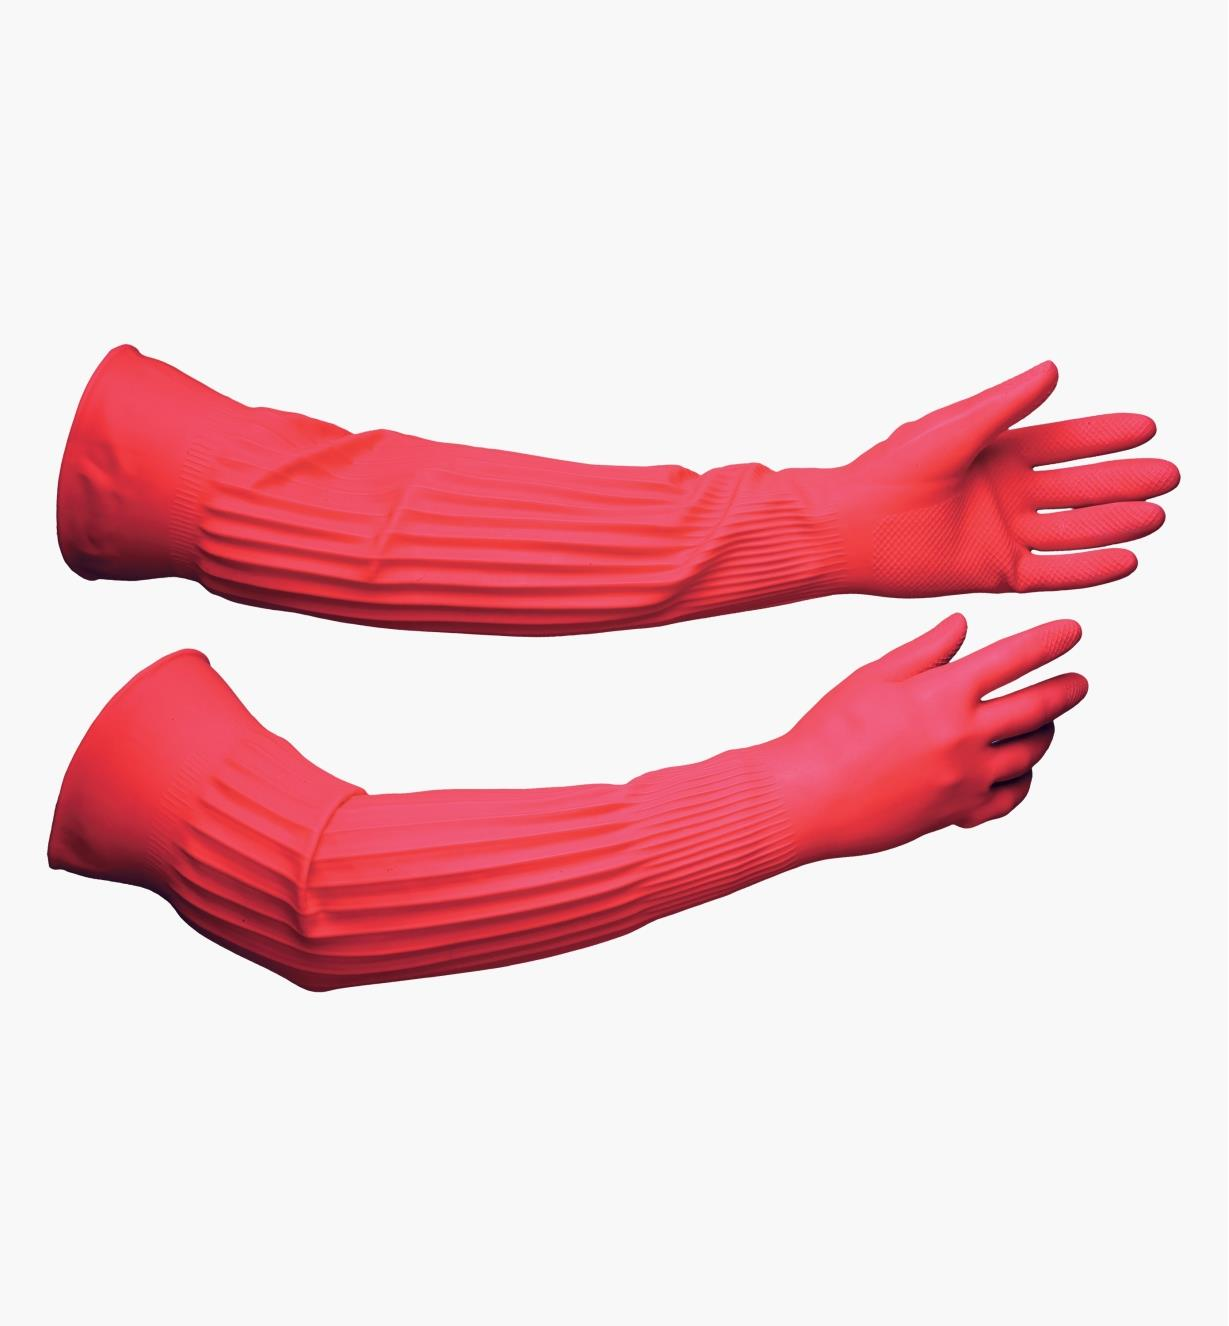 BL650 - Gants de protection extralongs